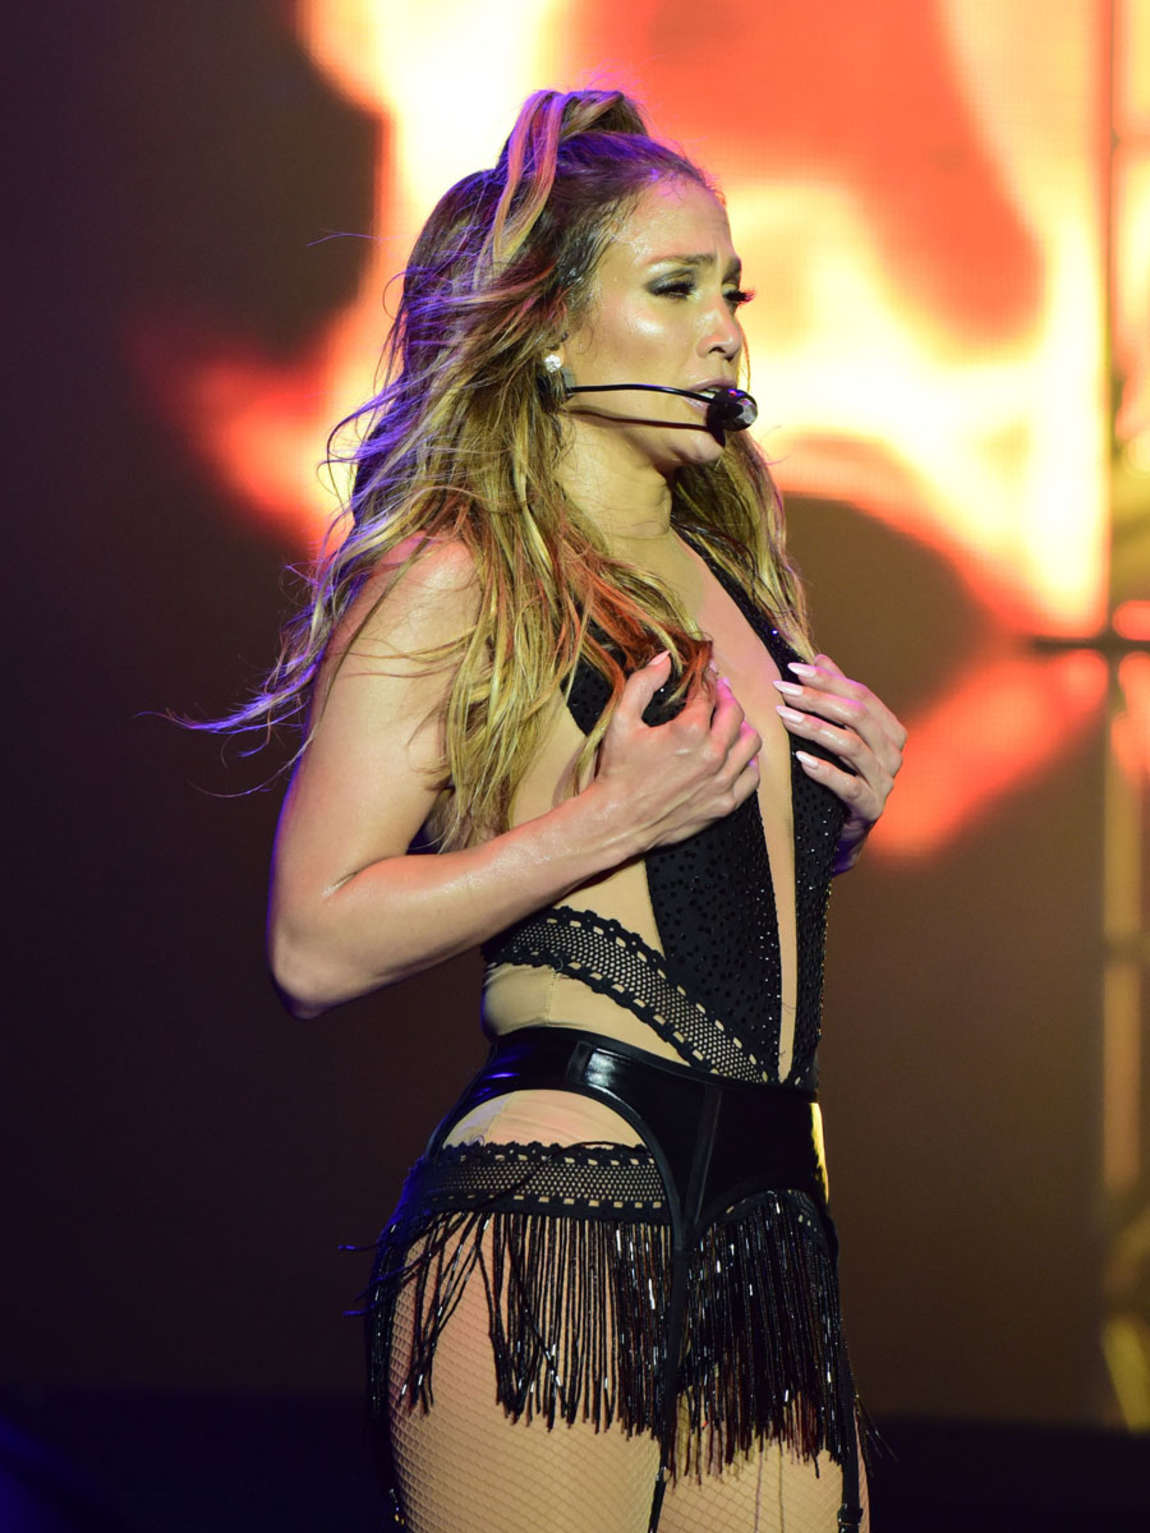 Jennifer lopez performs live at singapore grand prix in Where does jennifer lopez live